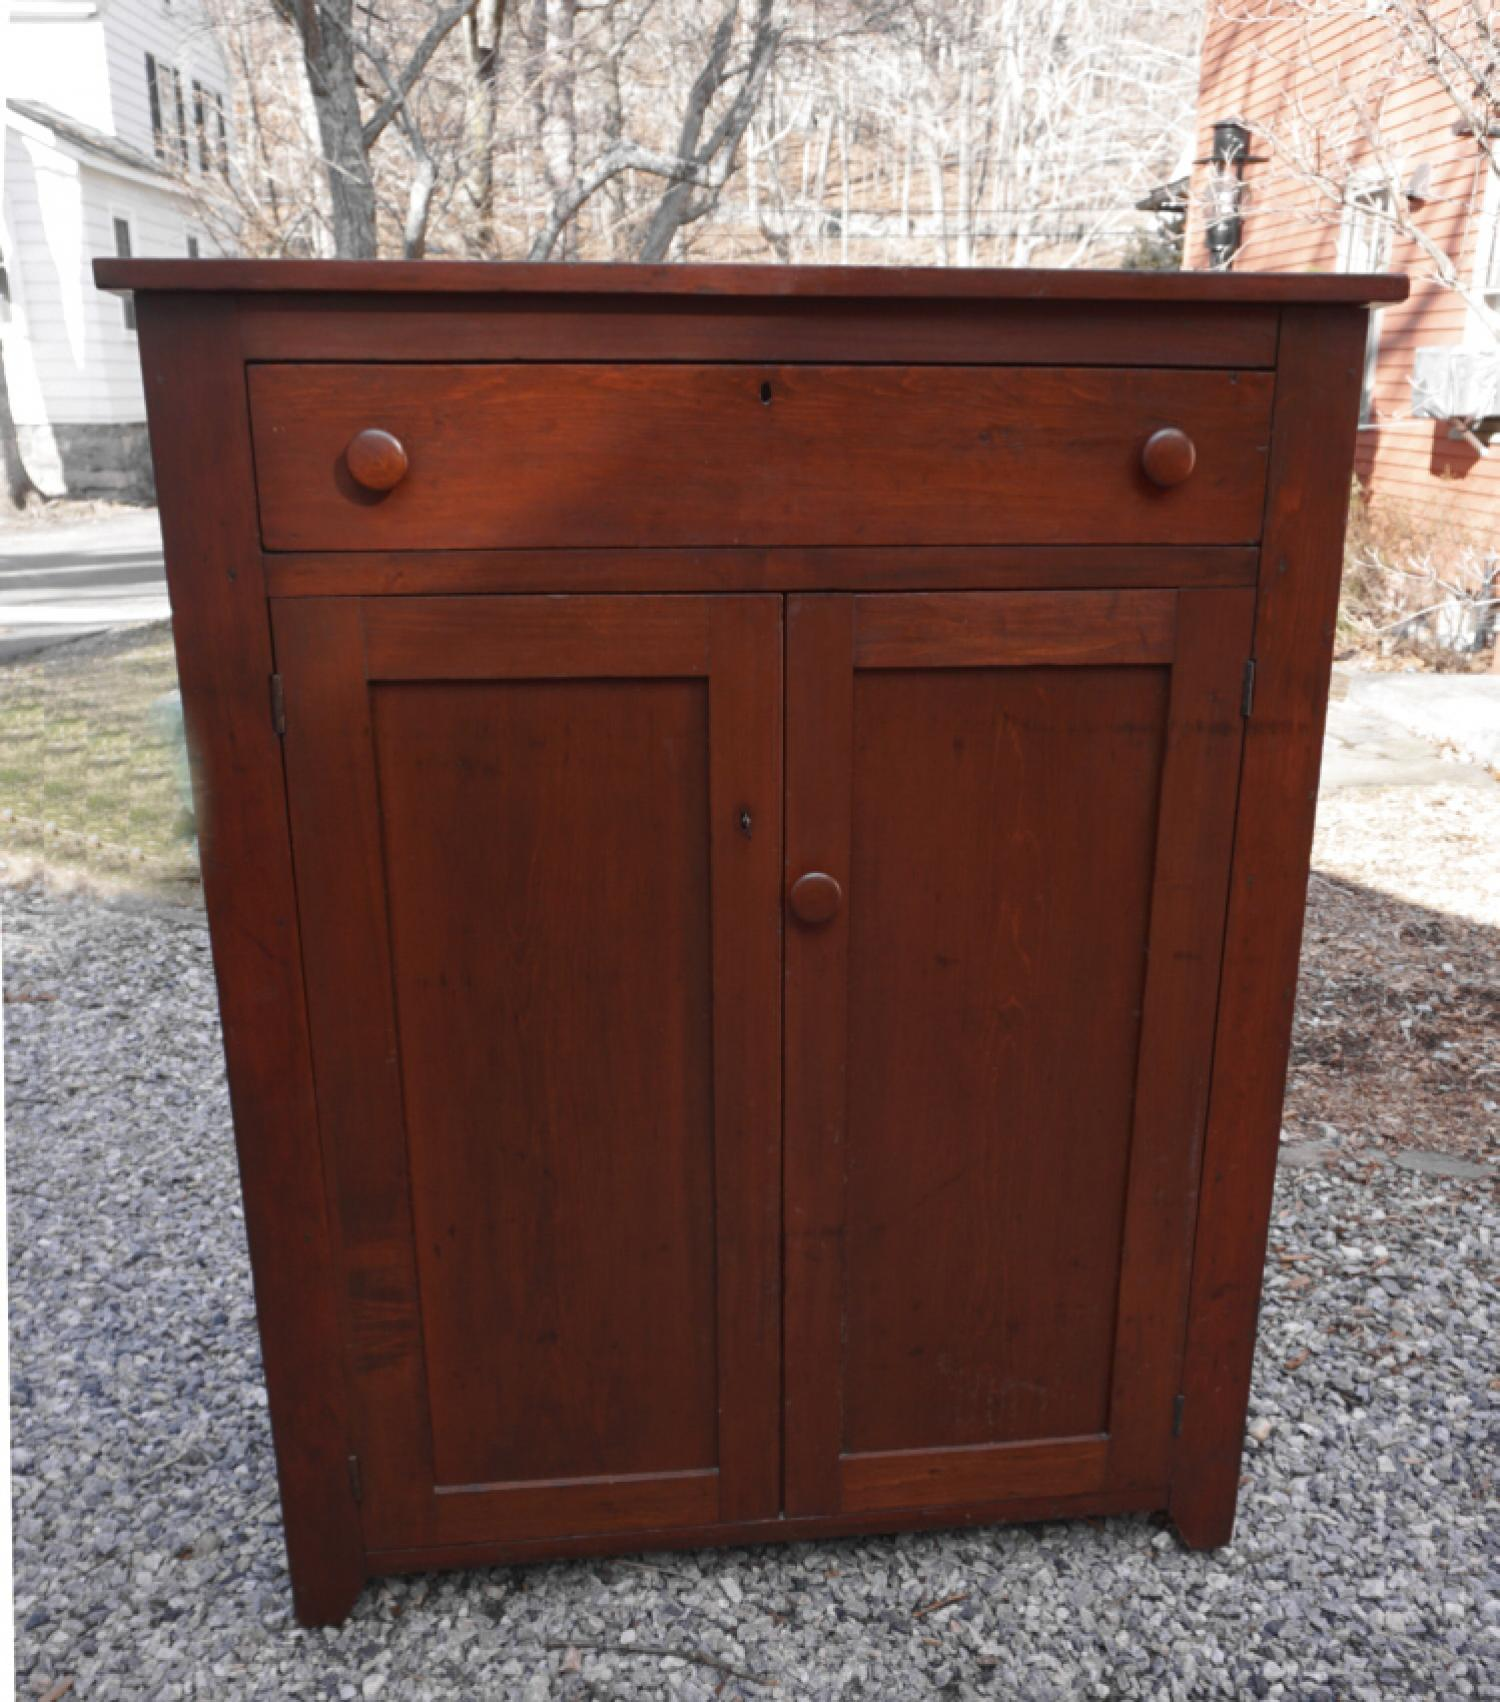 Early country pine country kitchen jelly cupboard c1840